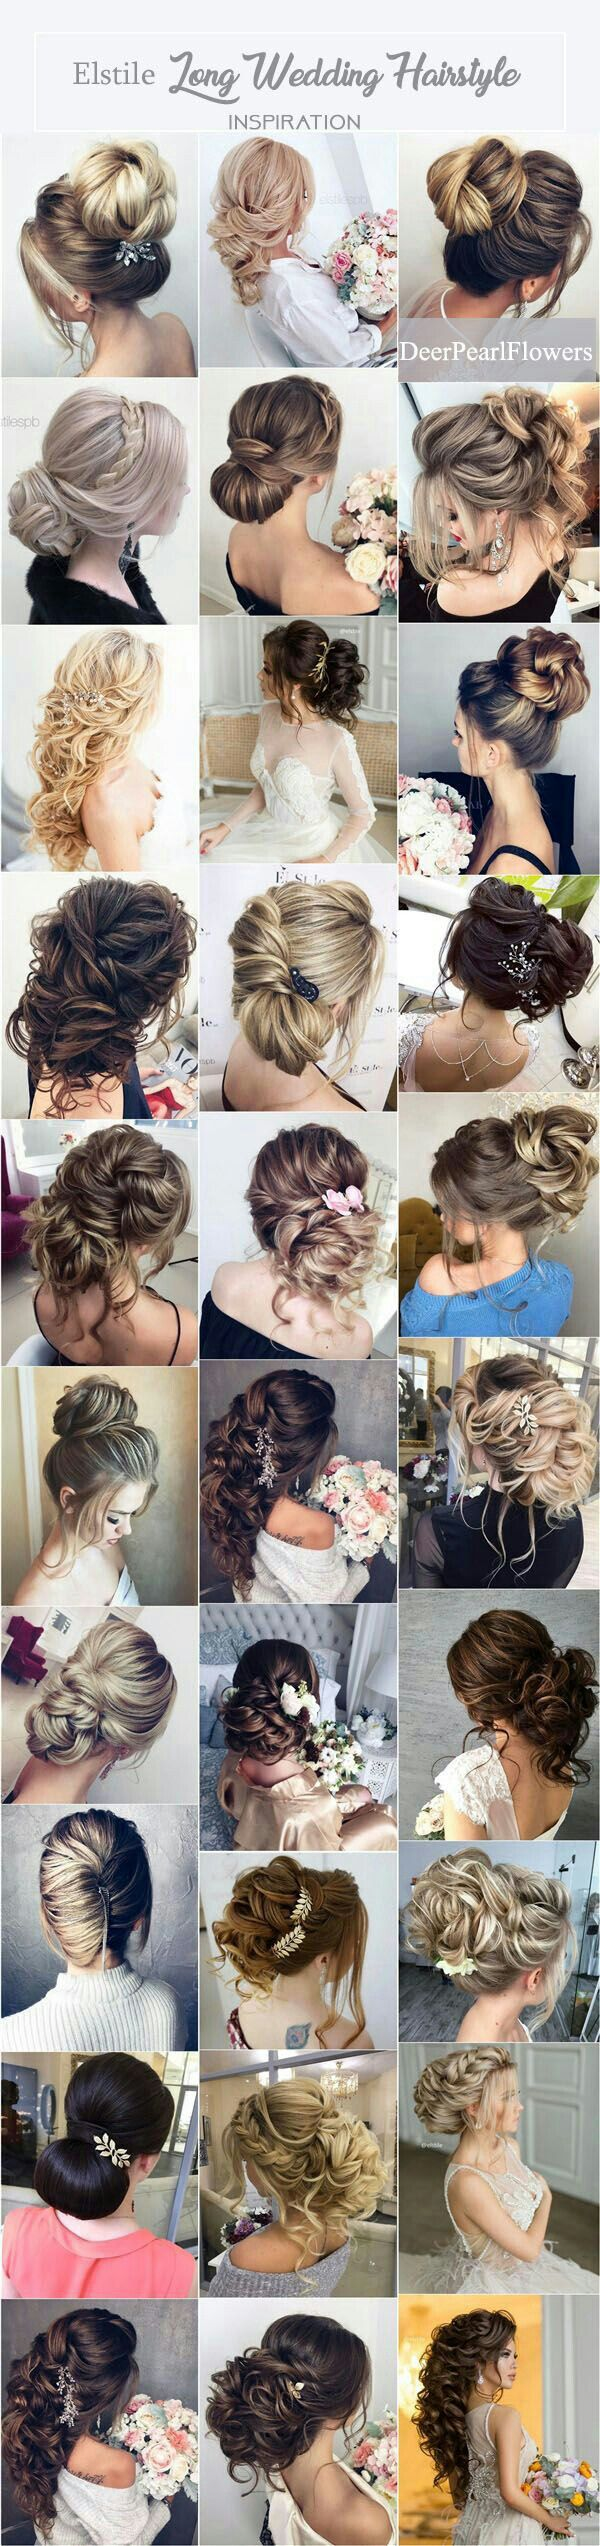 best Χτενίσματα images on pinterest hair dos hair ideas and